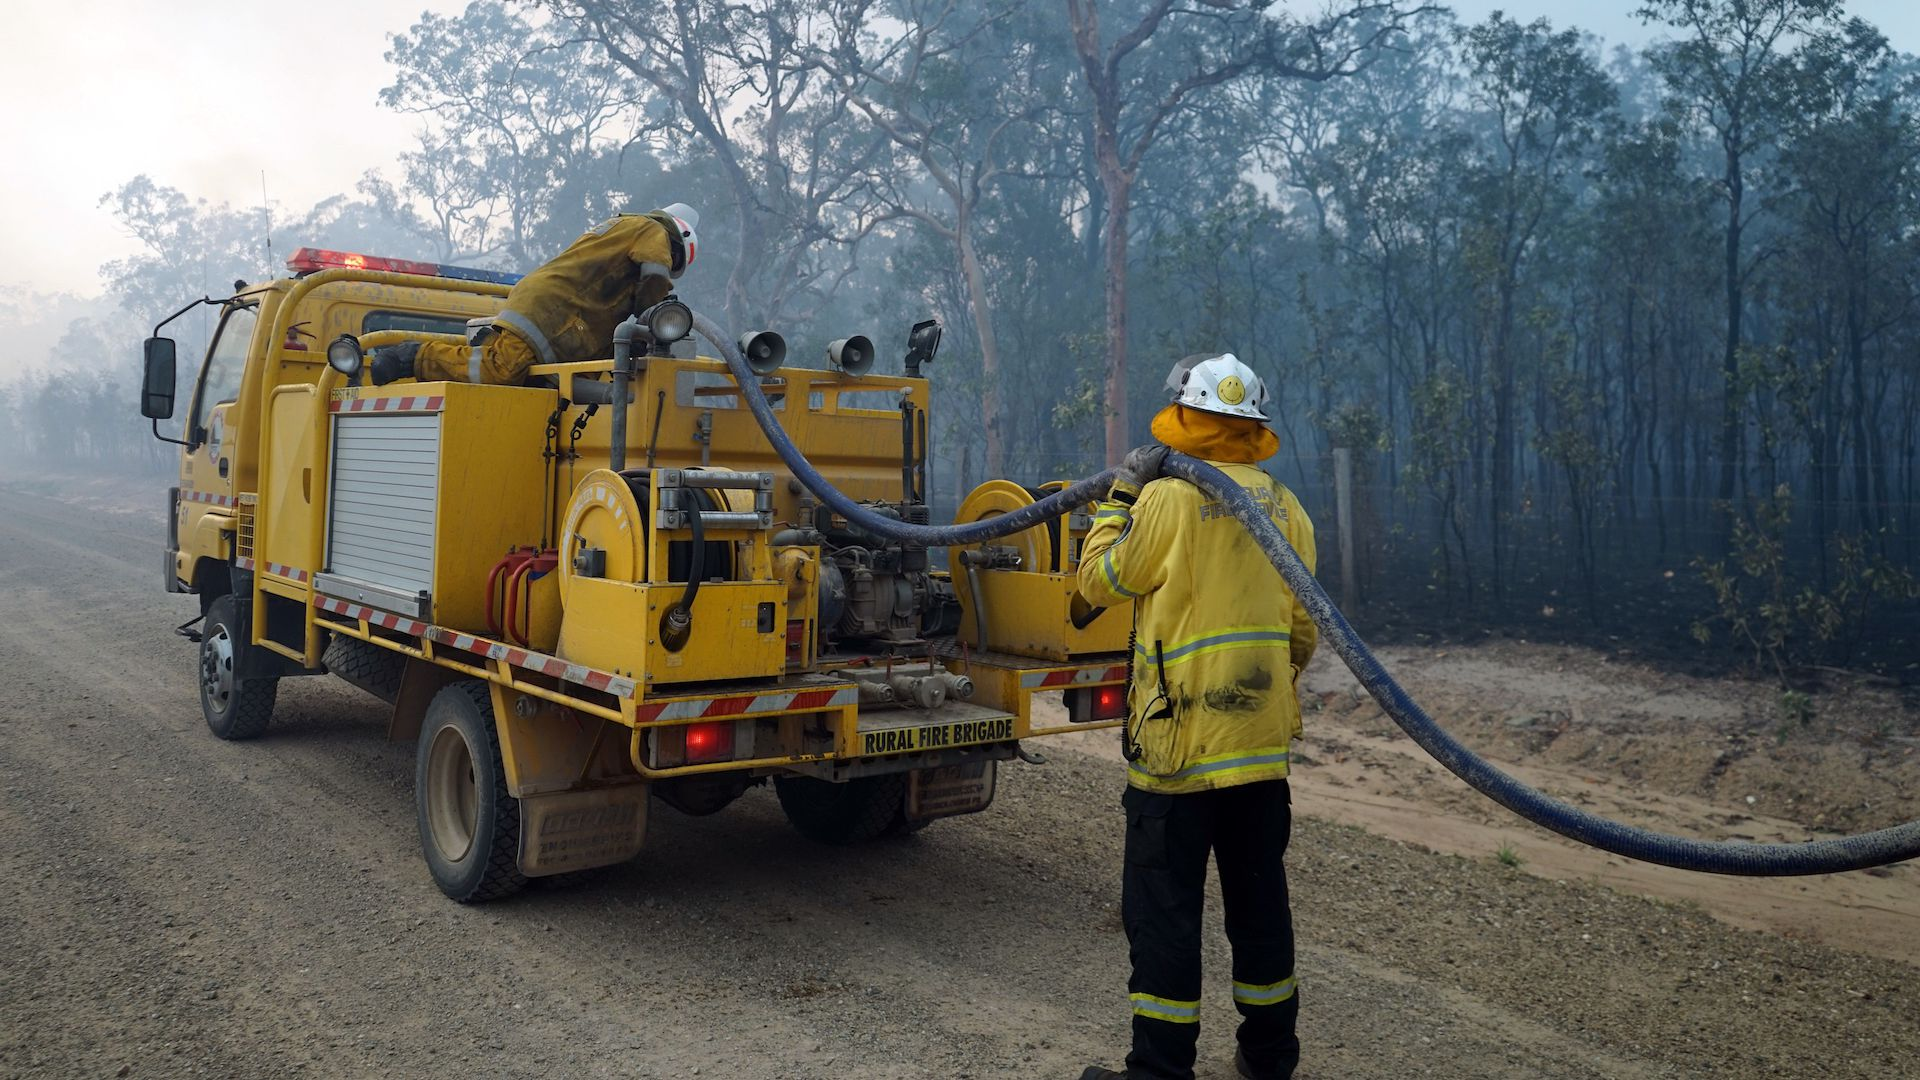 Firefighters refill their water from a water tanker in Pacific Drive in Deepwater National Park area of Queensland on November 28, 2018.